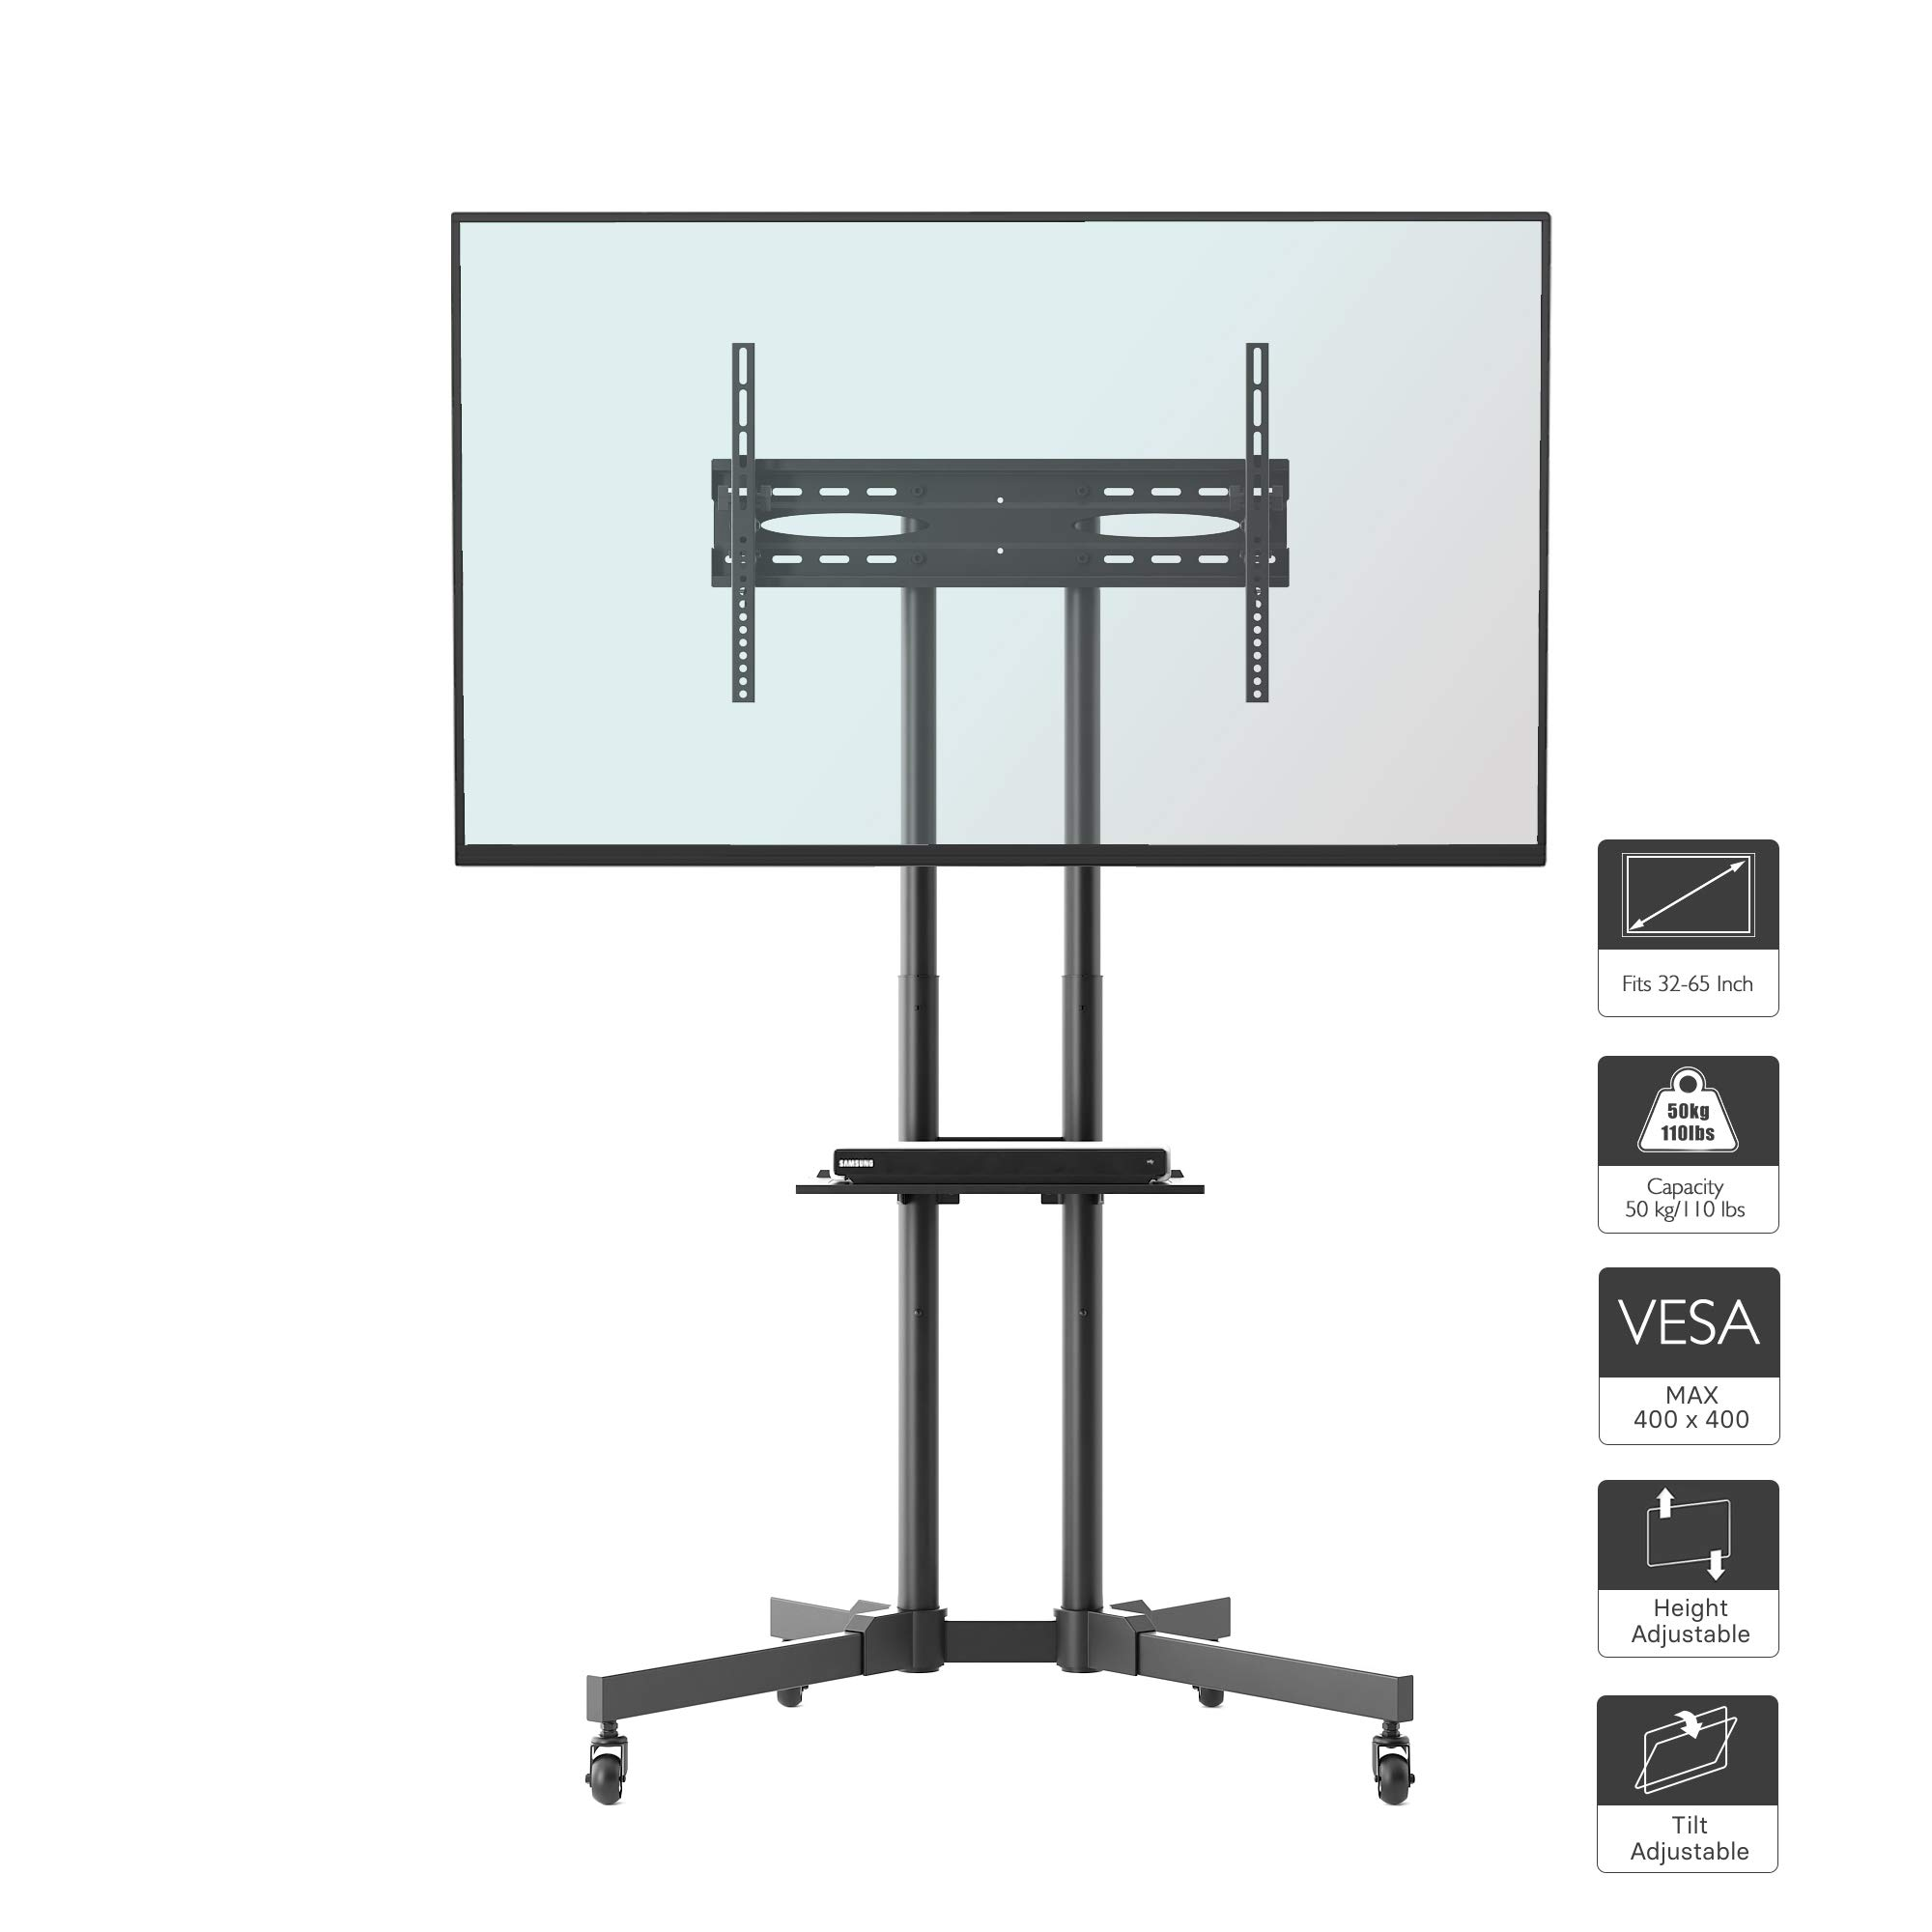 1home Rolling TV Cart Mobile TV Stand with Wheels for 32 to 65 inch LCD LED Plasma Flat Panel Screen Height Adjustable, Black